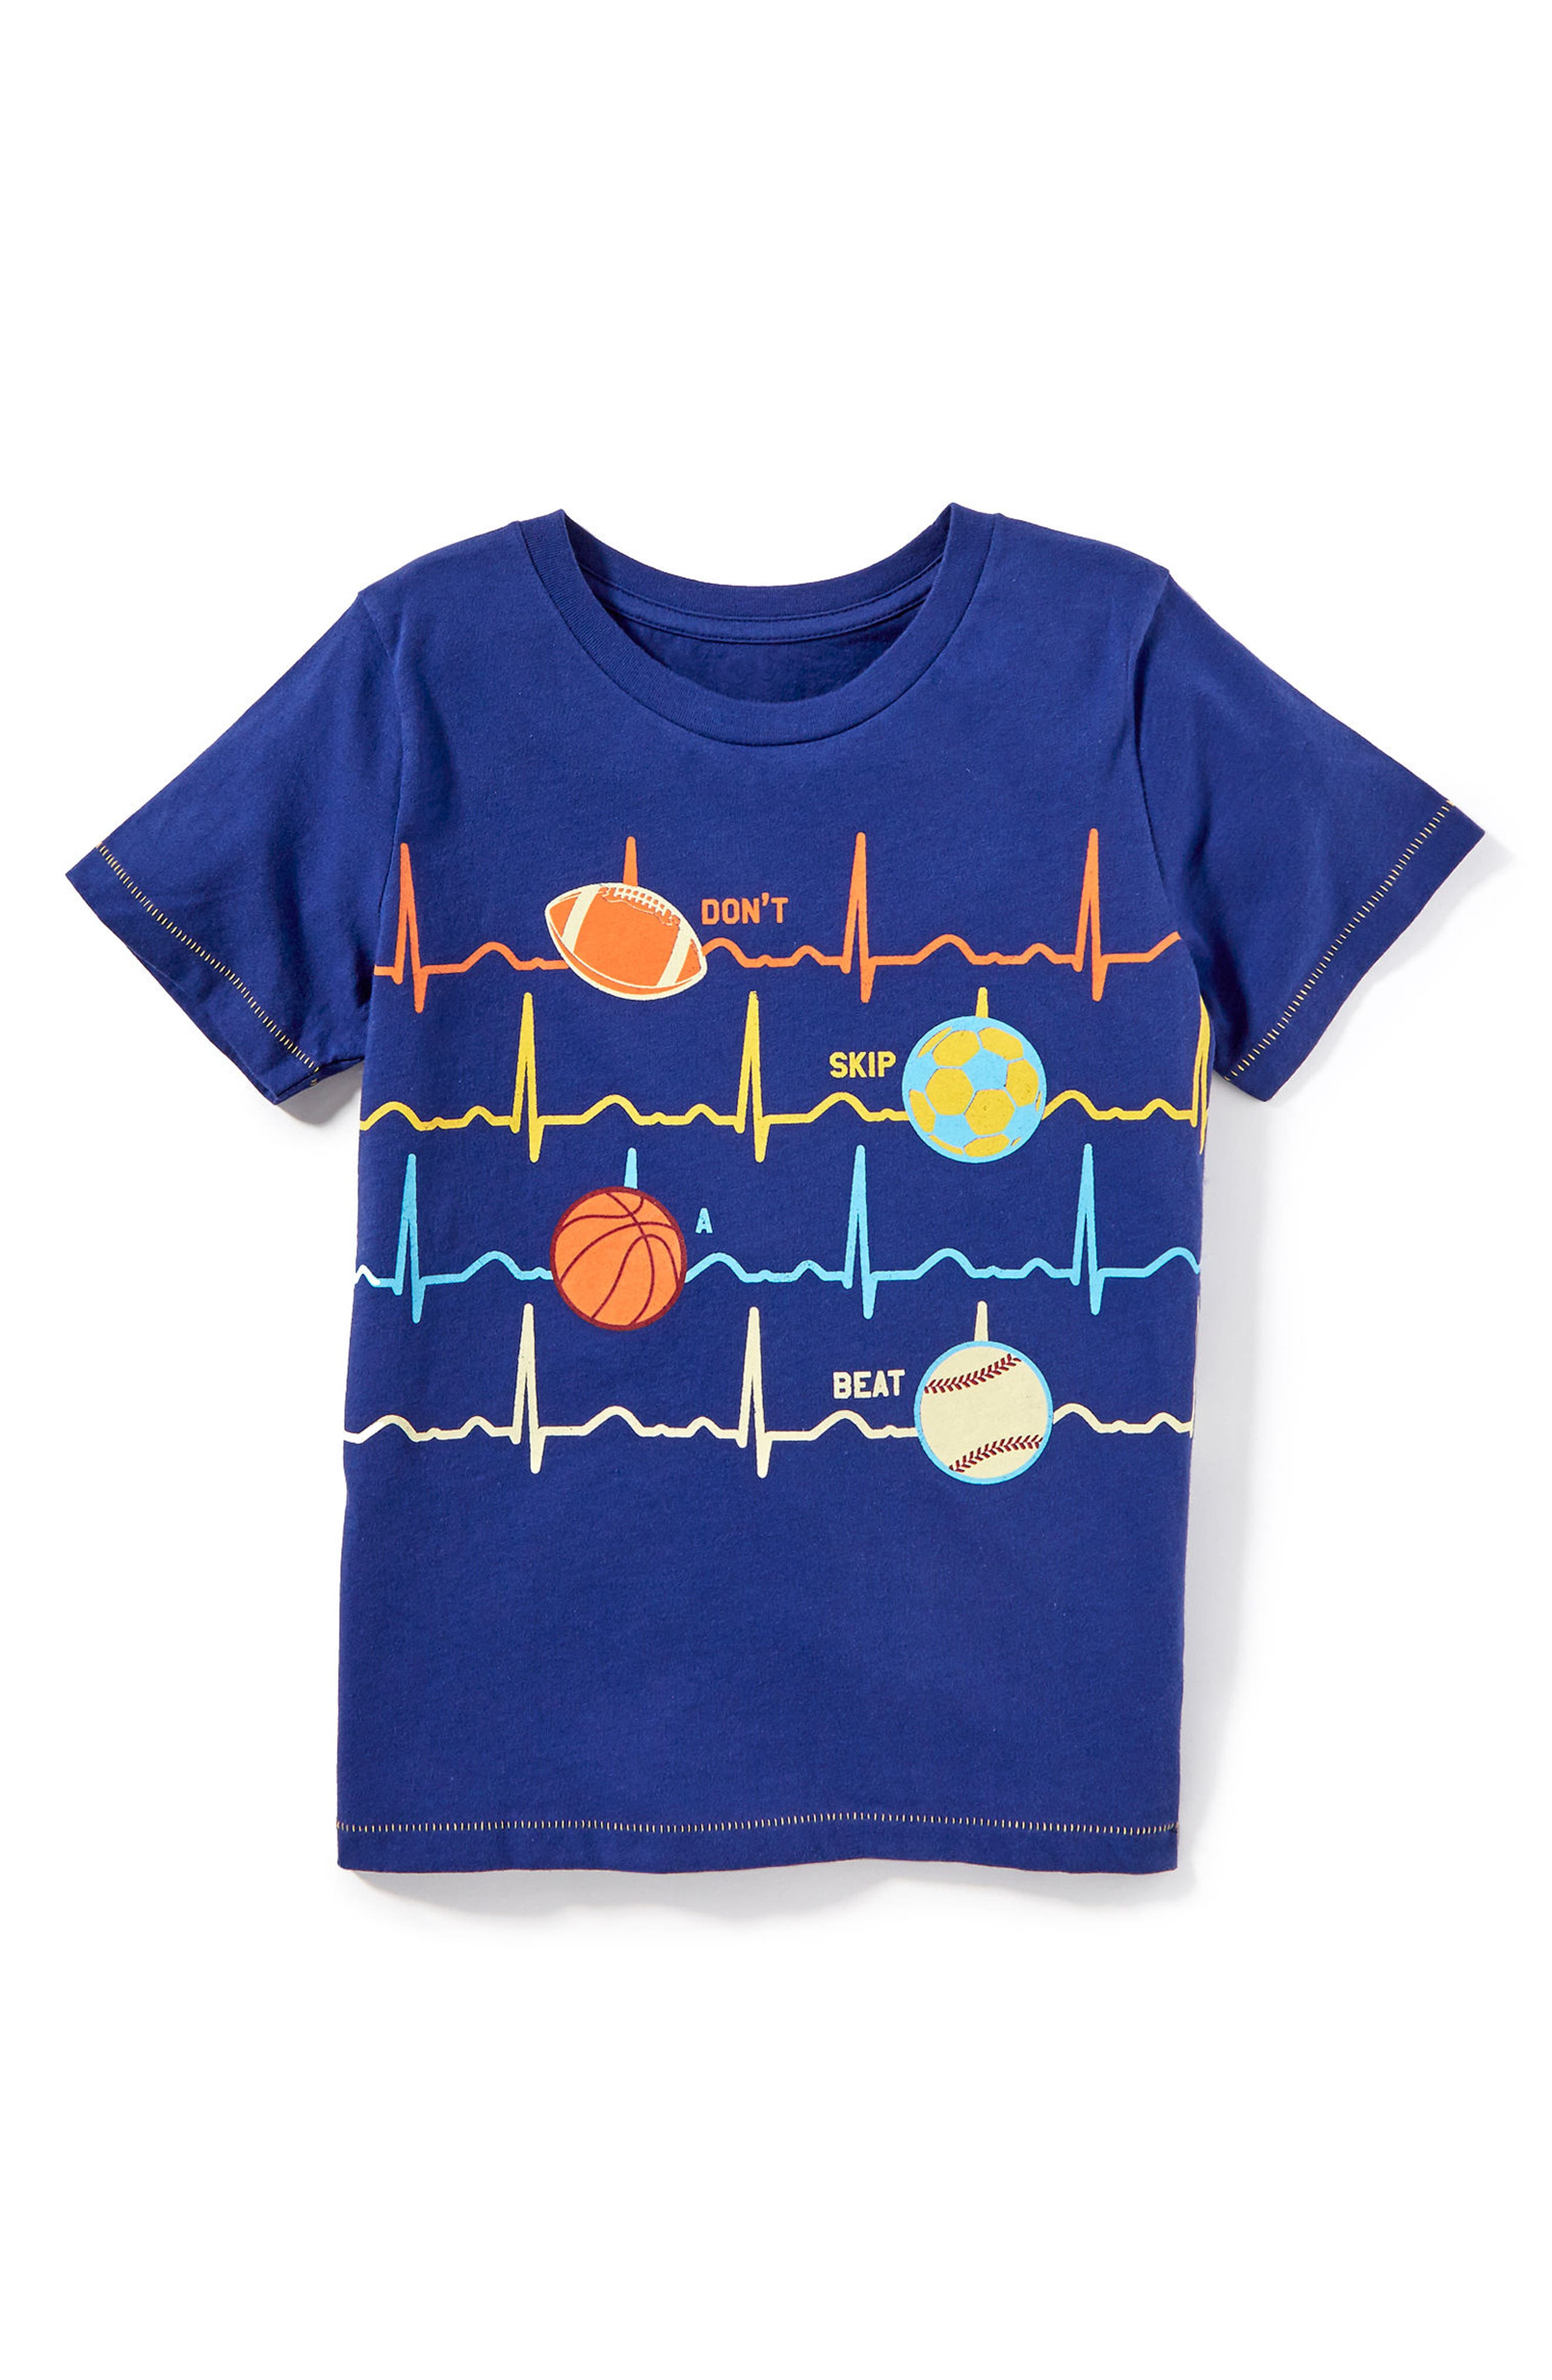 Heartbeat T-Shirt,                             Alternate thumbnail 3, color,                             410